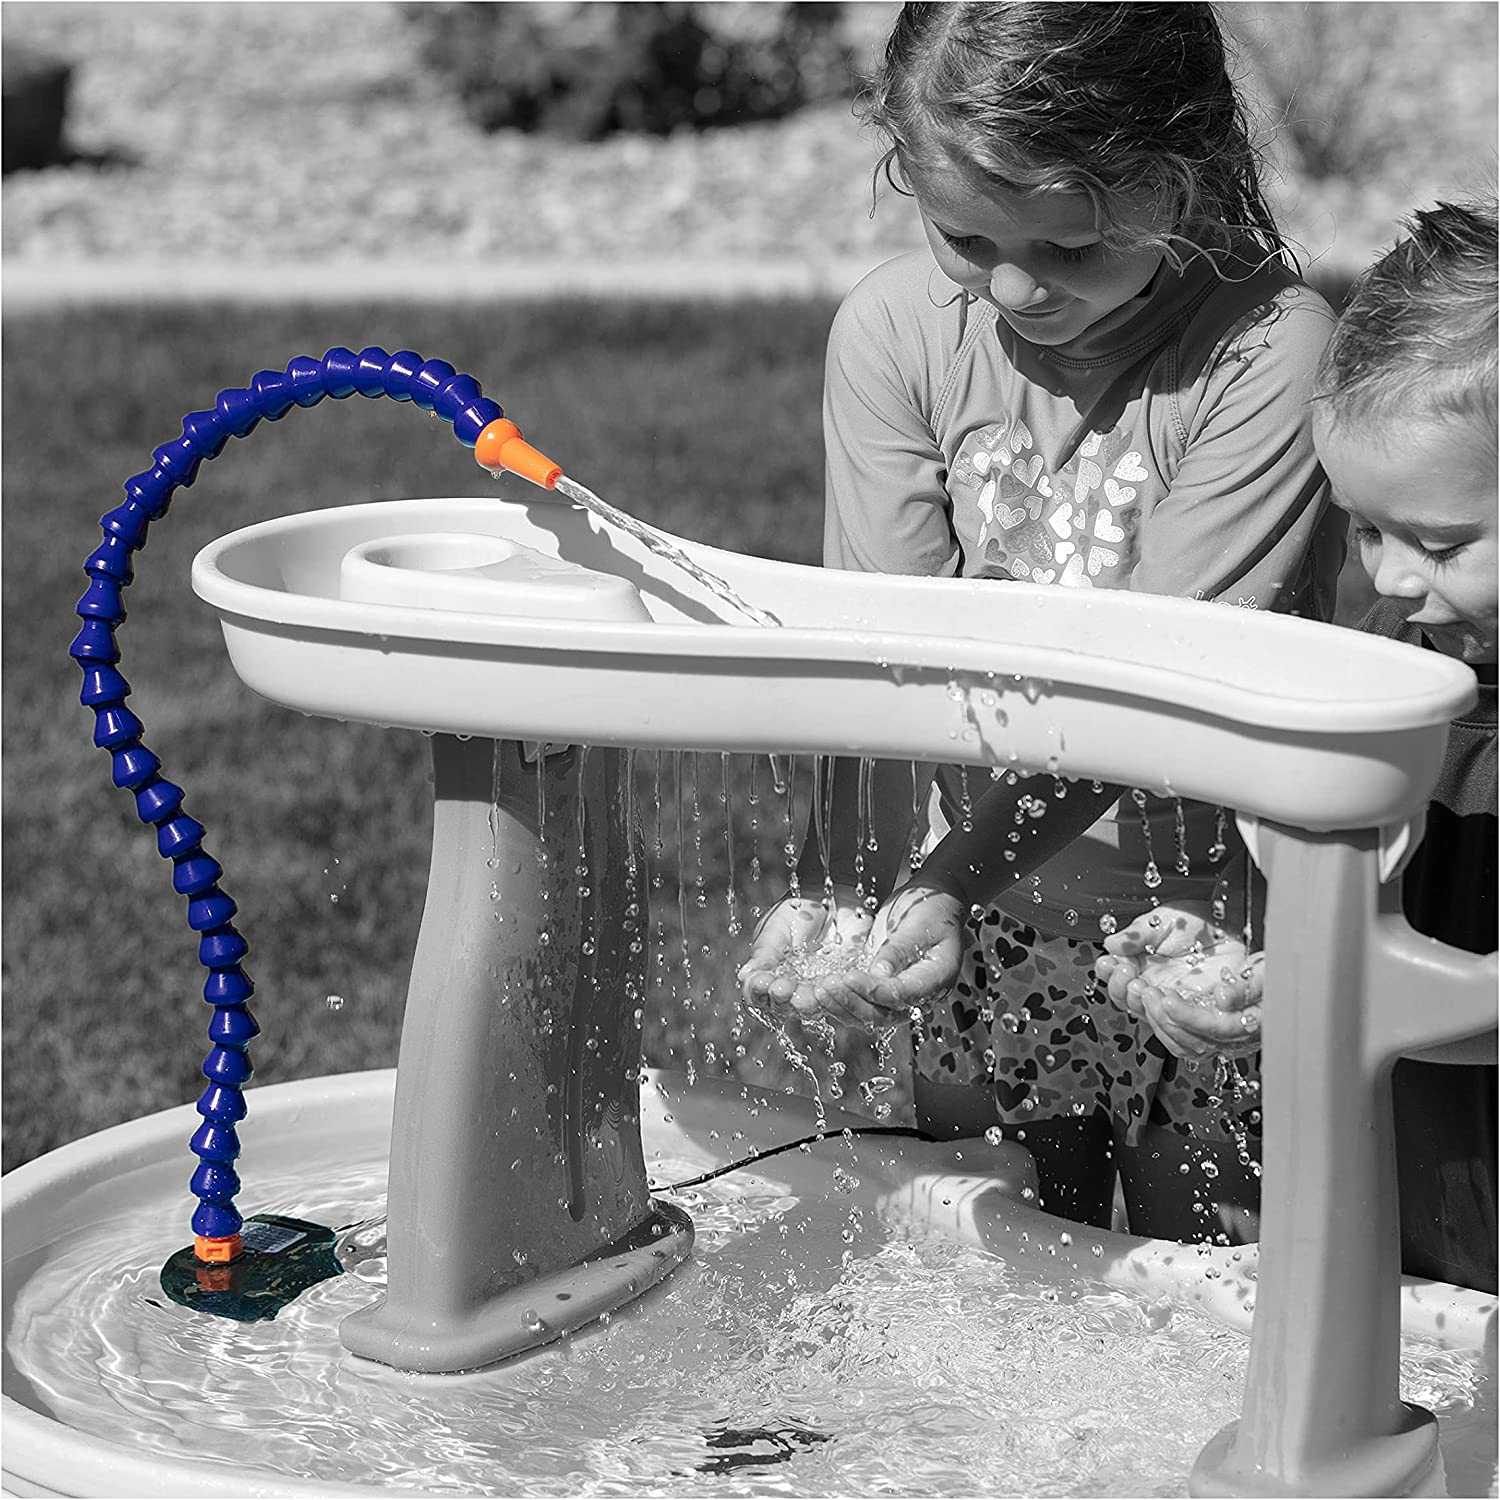 Splash New product Unlimited: Water Table Pump - Summer Max 61% OFF Outdoor Fun Ga